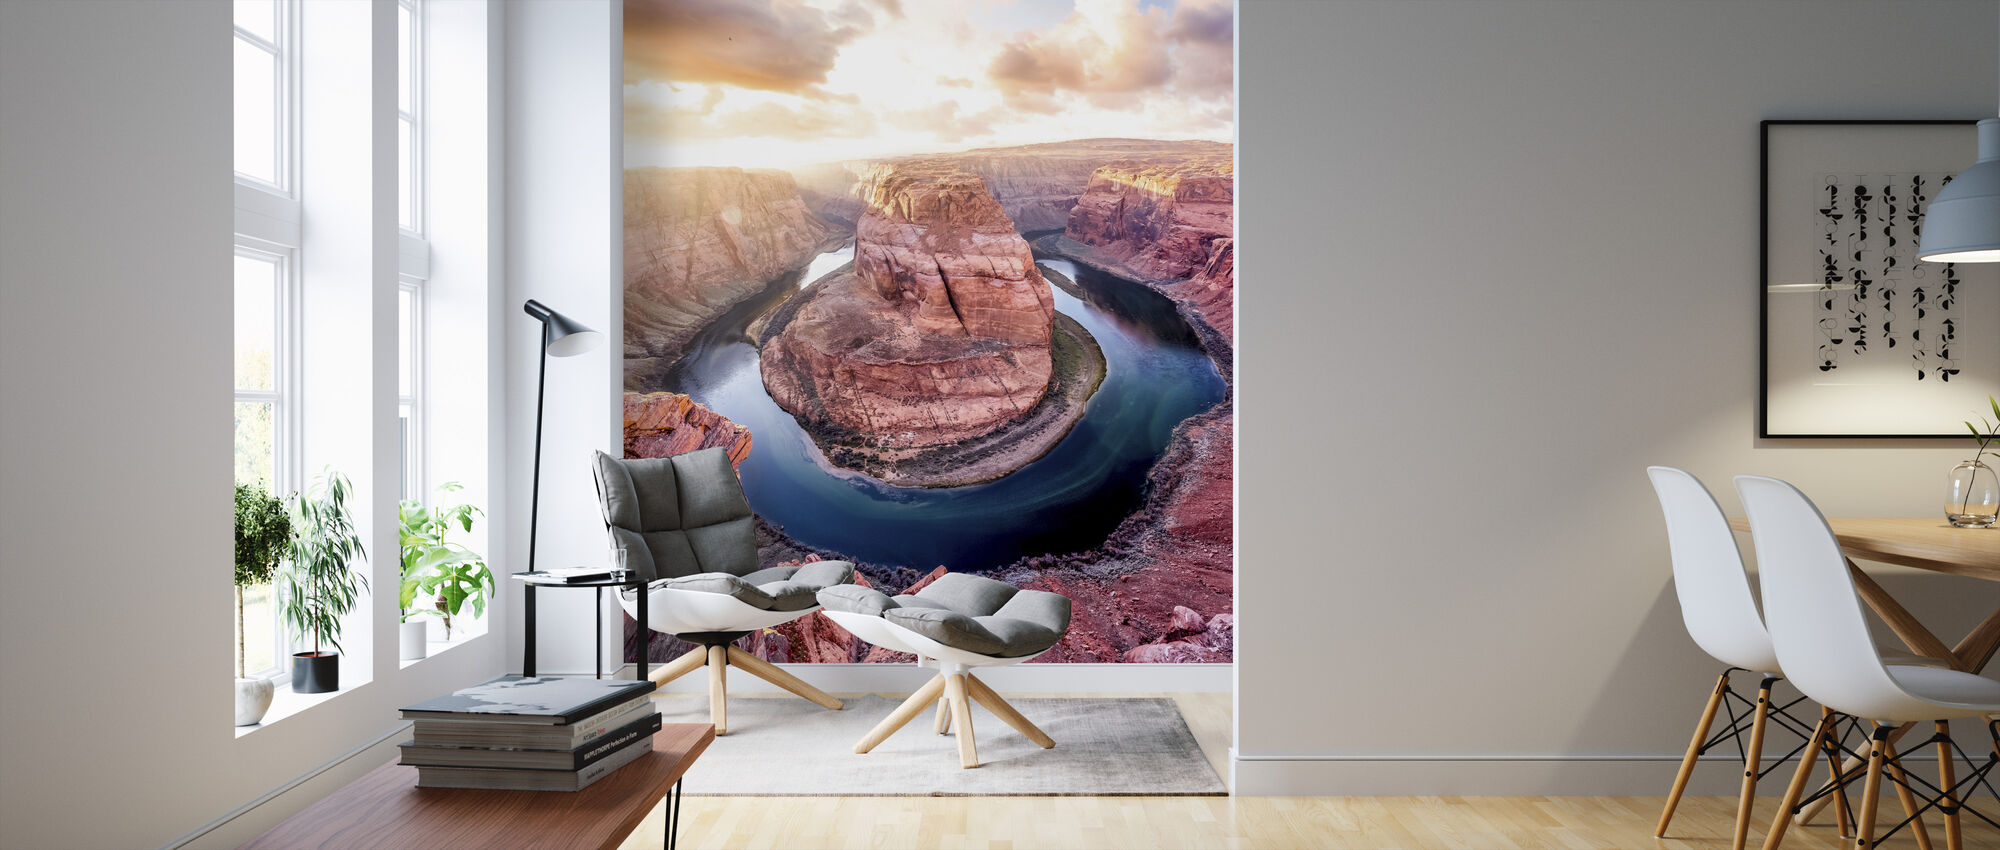 Arizona Canyon - Wallpaper - Living Room